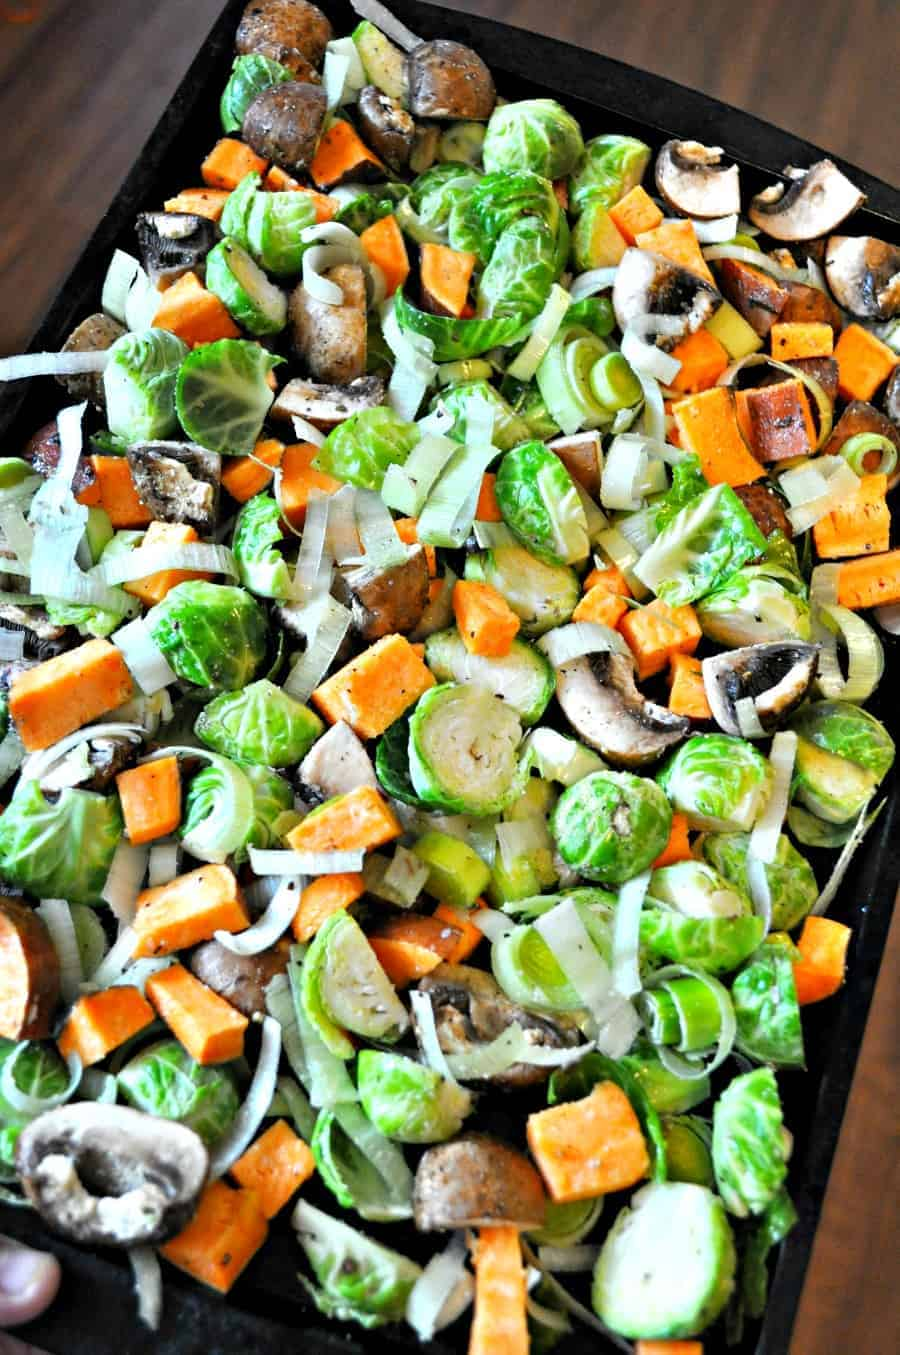 Vegan Fall Pasta Salad Rabbit And Wolves All Veggie Vegetarian This Is So Crave Worthy Veggies Are Roasted Together On One Sheet Pan Then Tossed With Dressing